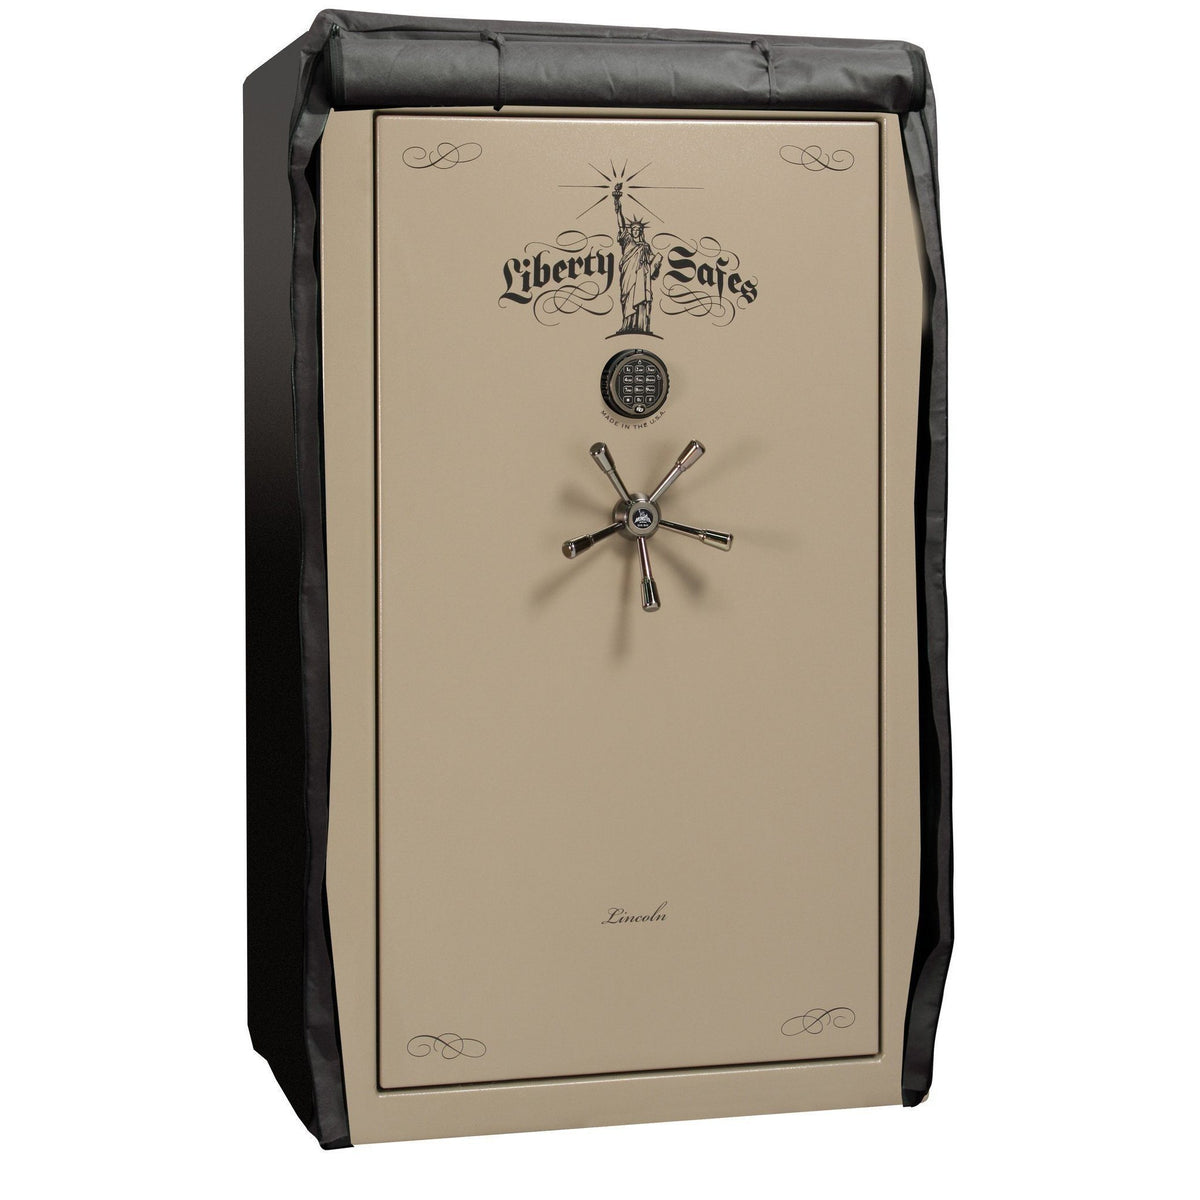 Accessory - Security - Safe Cover - 30-35 size safes